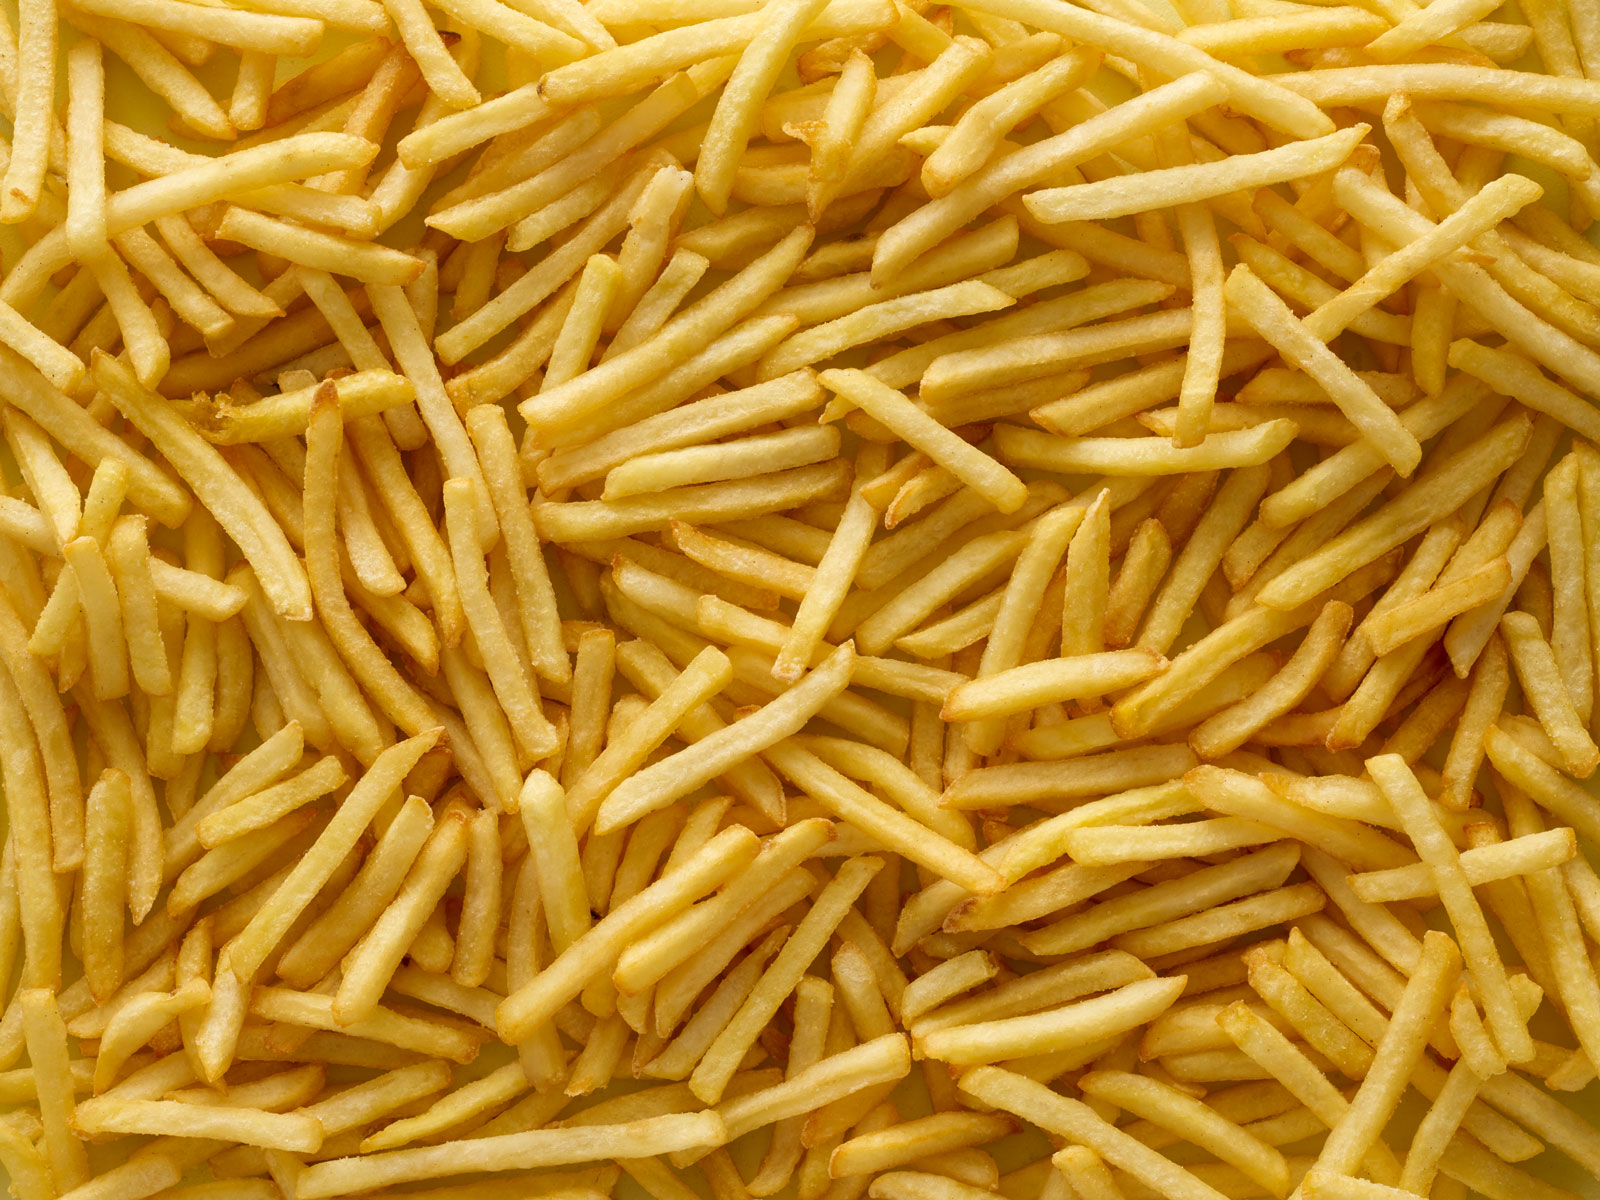 National French Fry Day 2019: Where to Get Deals and Free